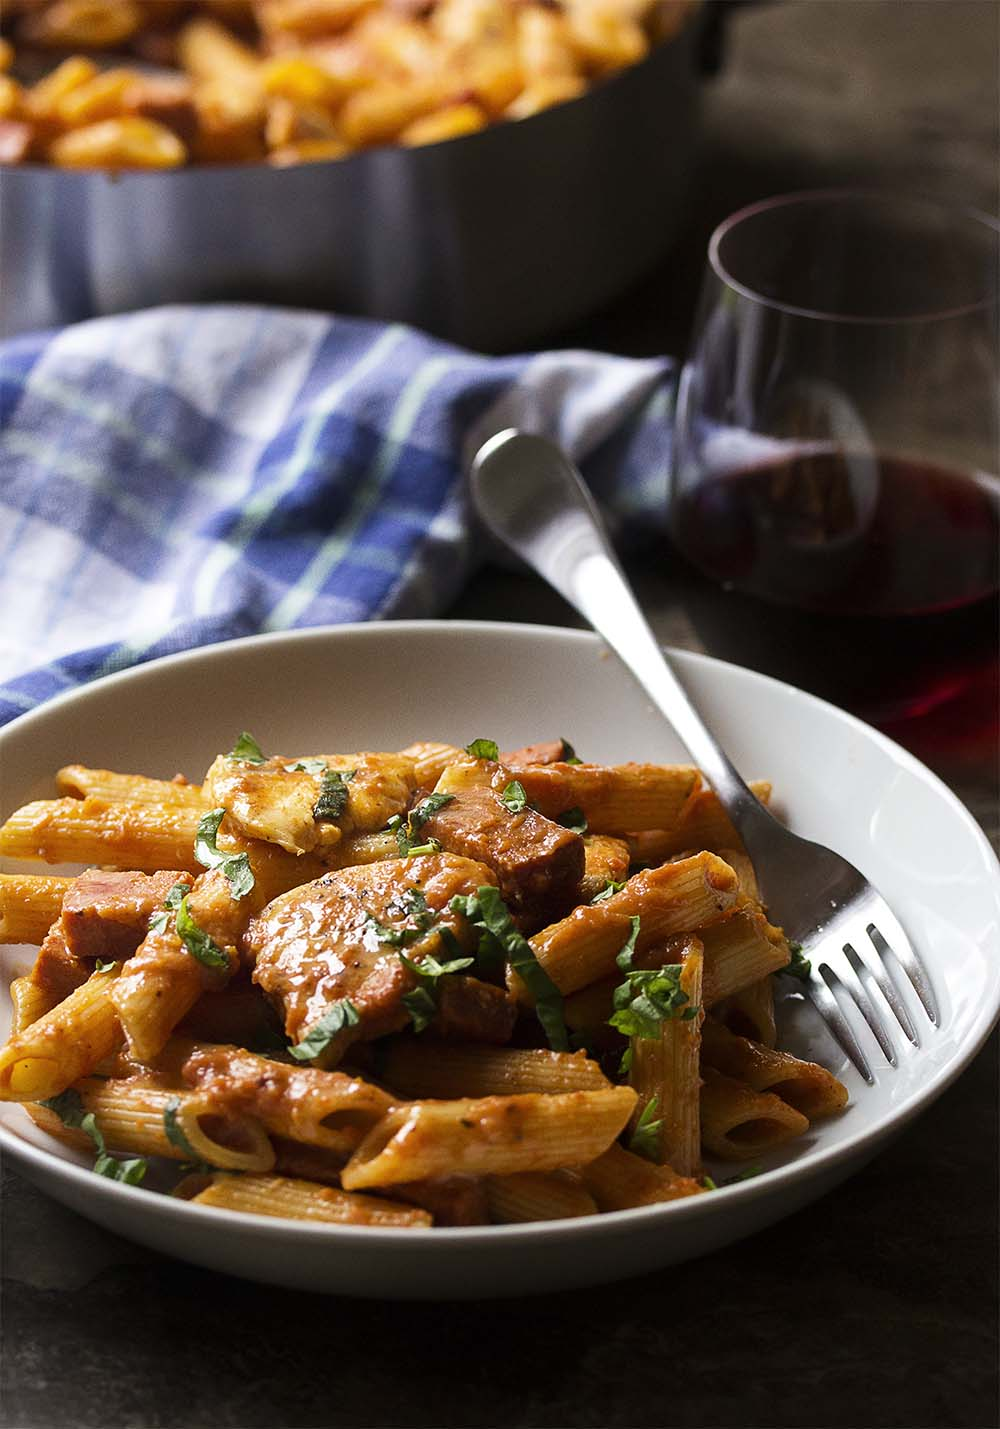 My penne alla vodka is creamy and full of deep tomato flavor from homemade marinara along with plenty of seared chicken and chorizo sausage. Easy weeknight meal! | justalittlebitofbacon.com